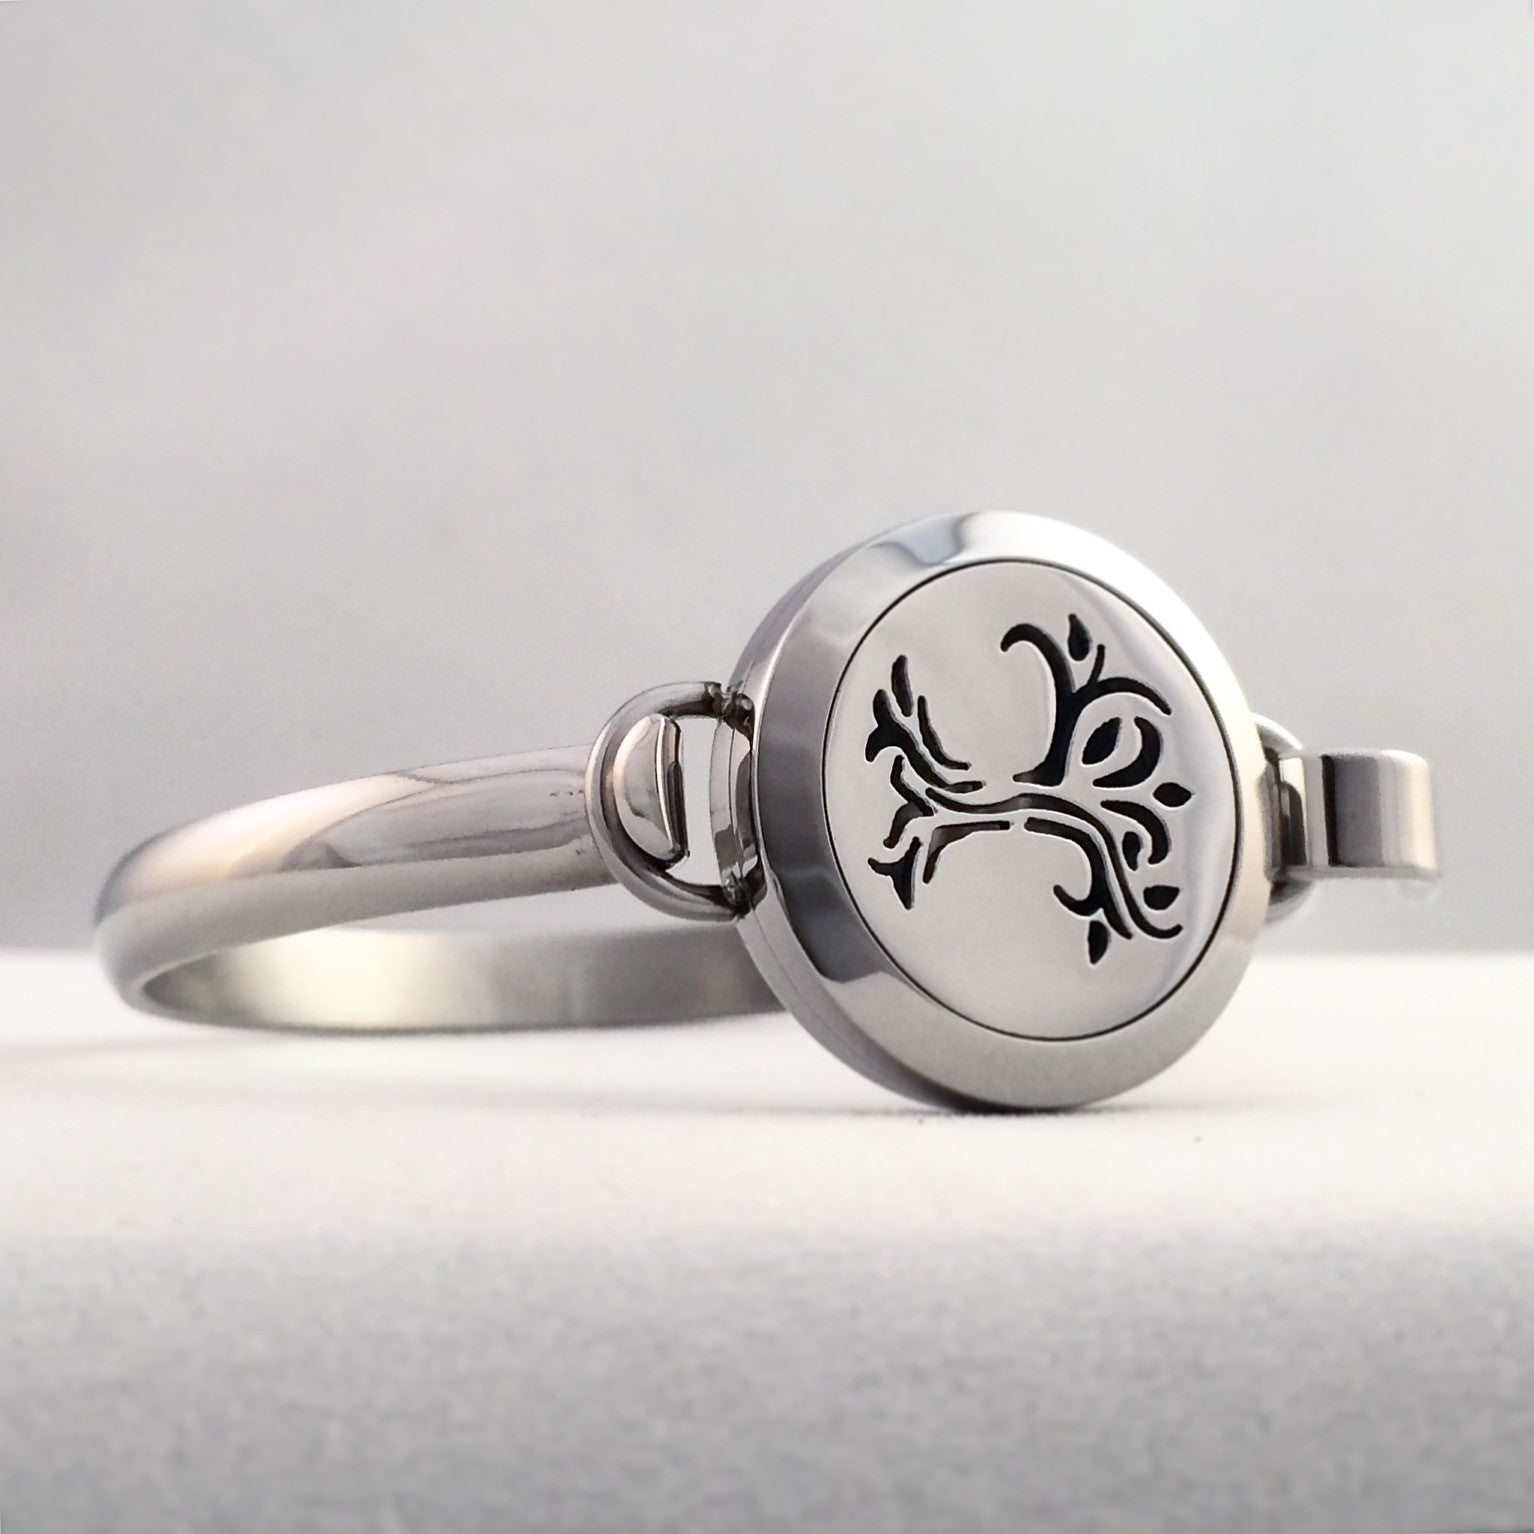 Stainless Steel Essential Oil Diffuser Bracelet tree of life